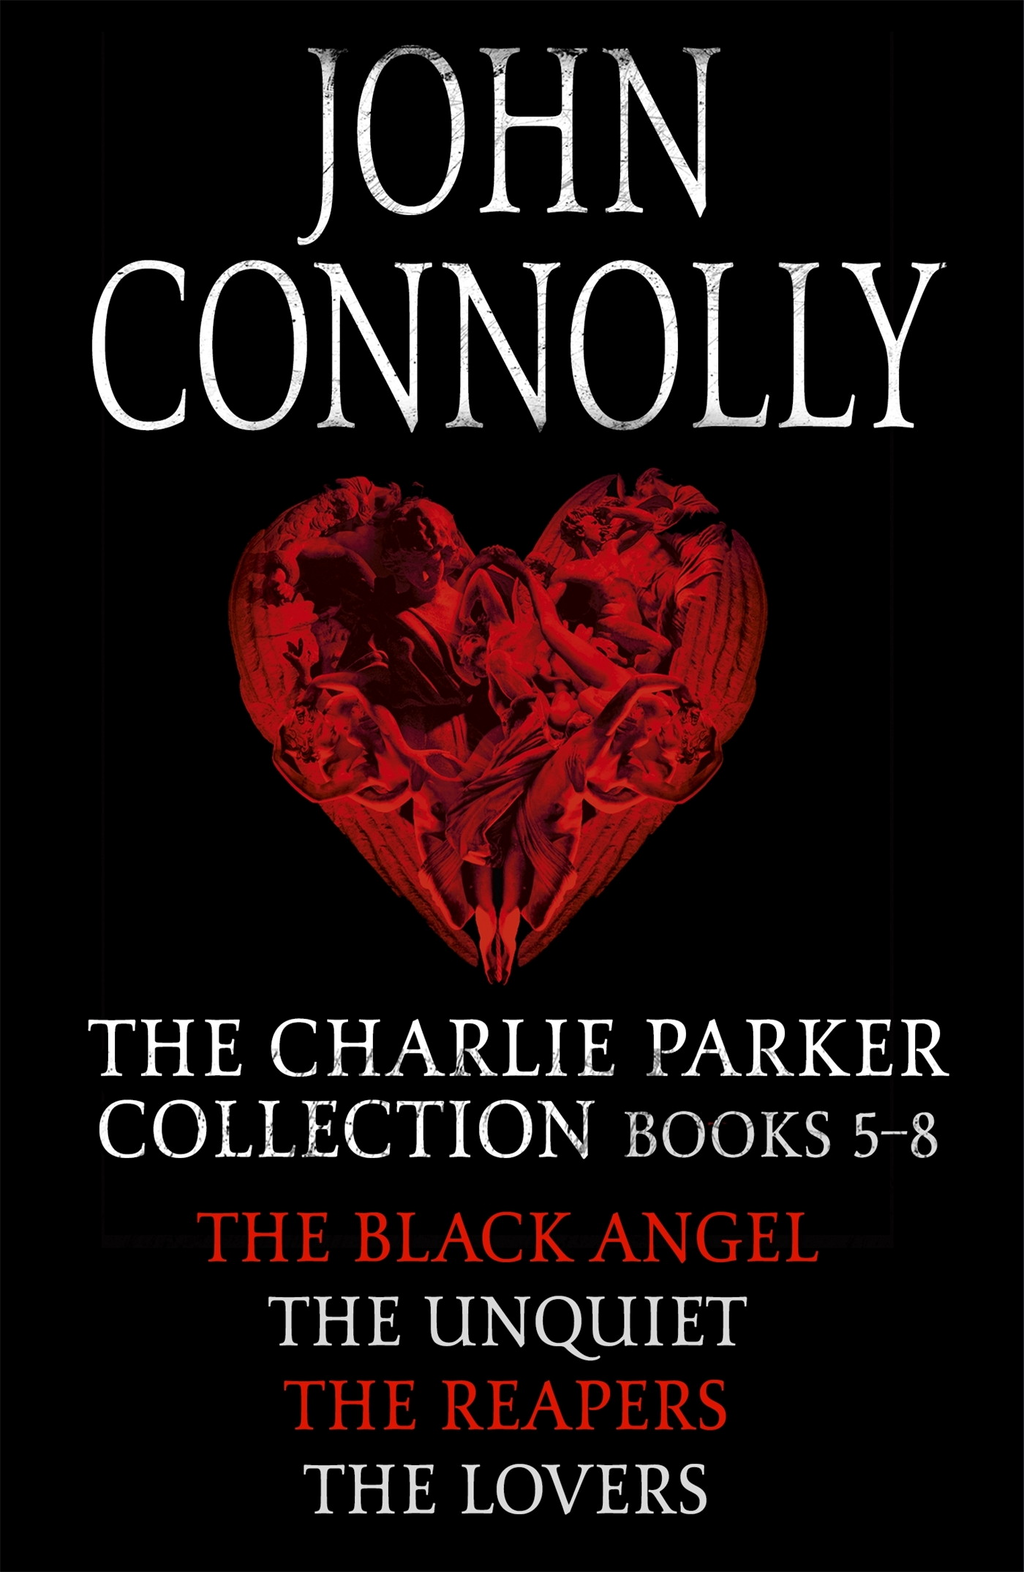 Charlie Parker Collection 2 - Ebook bundle